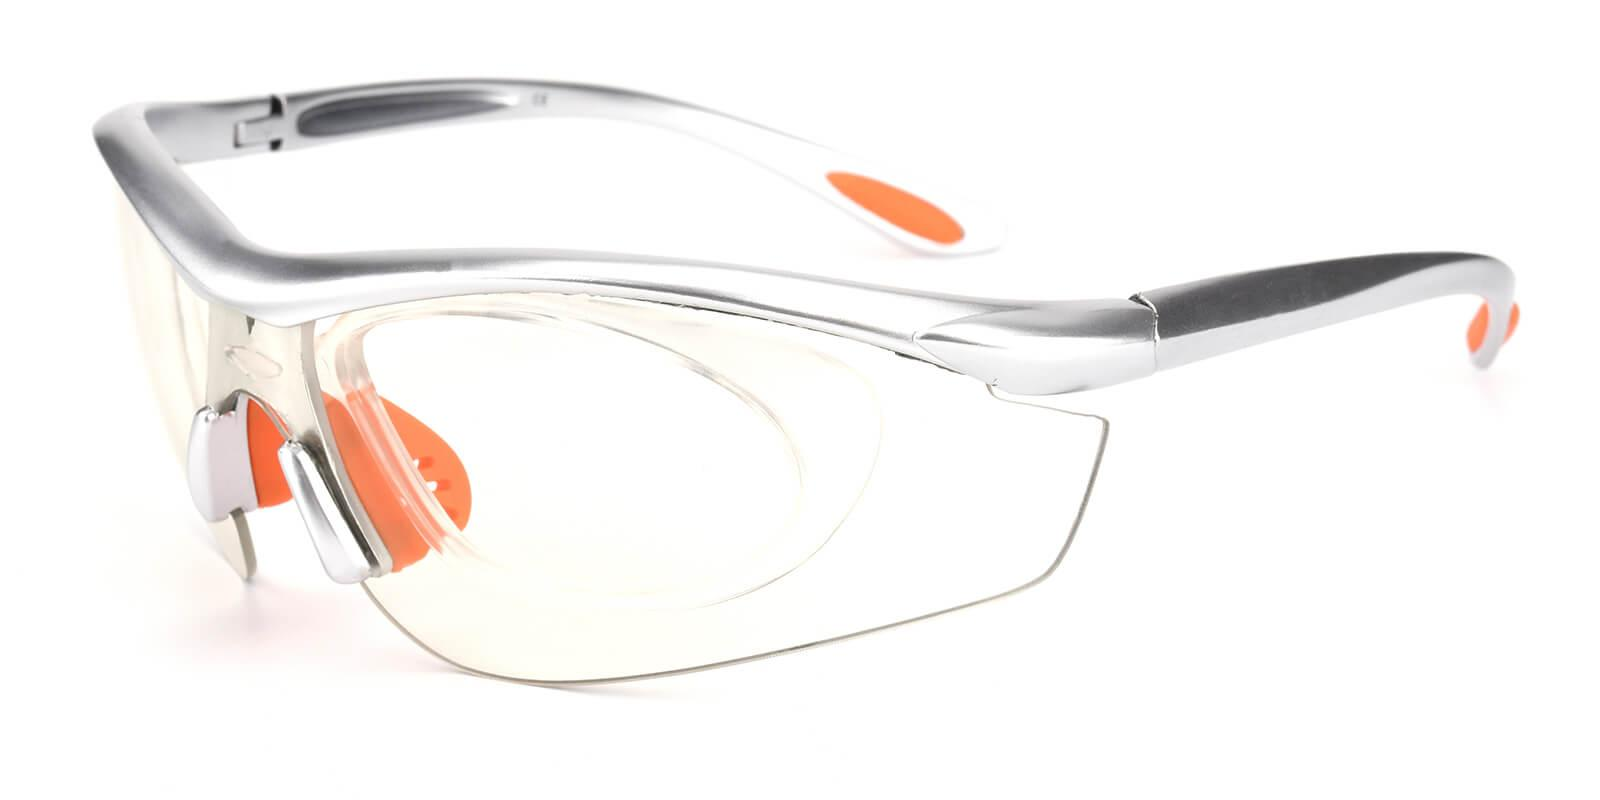 Preavey-Silver-Square-Plastic-SportsGlasses-additional1